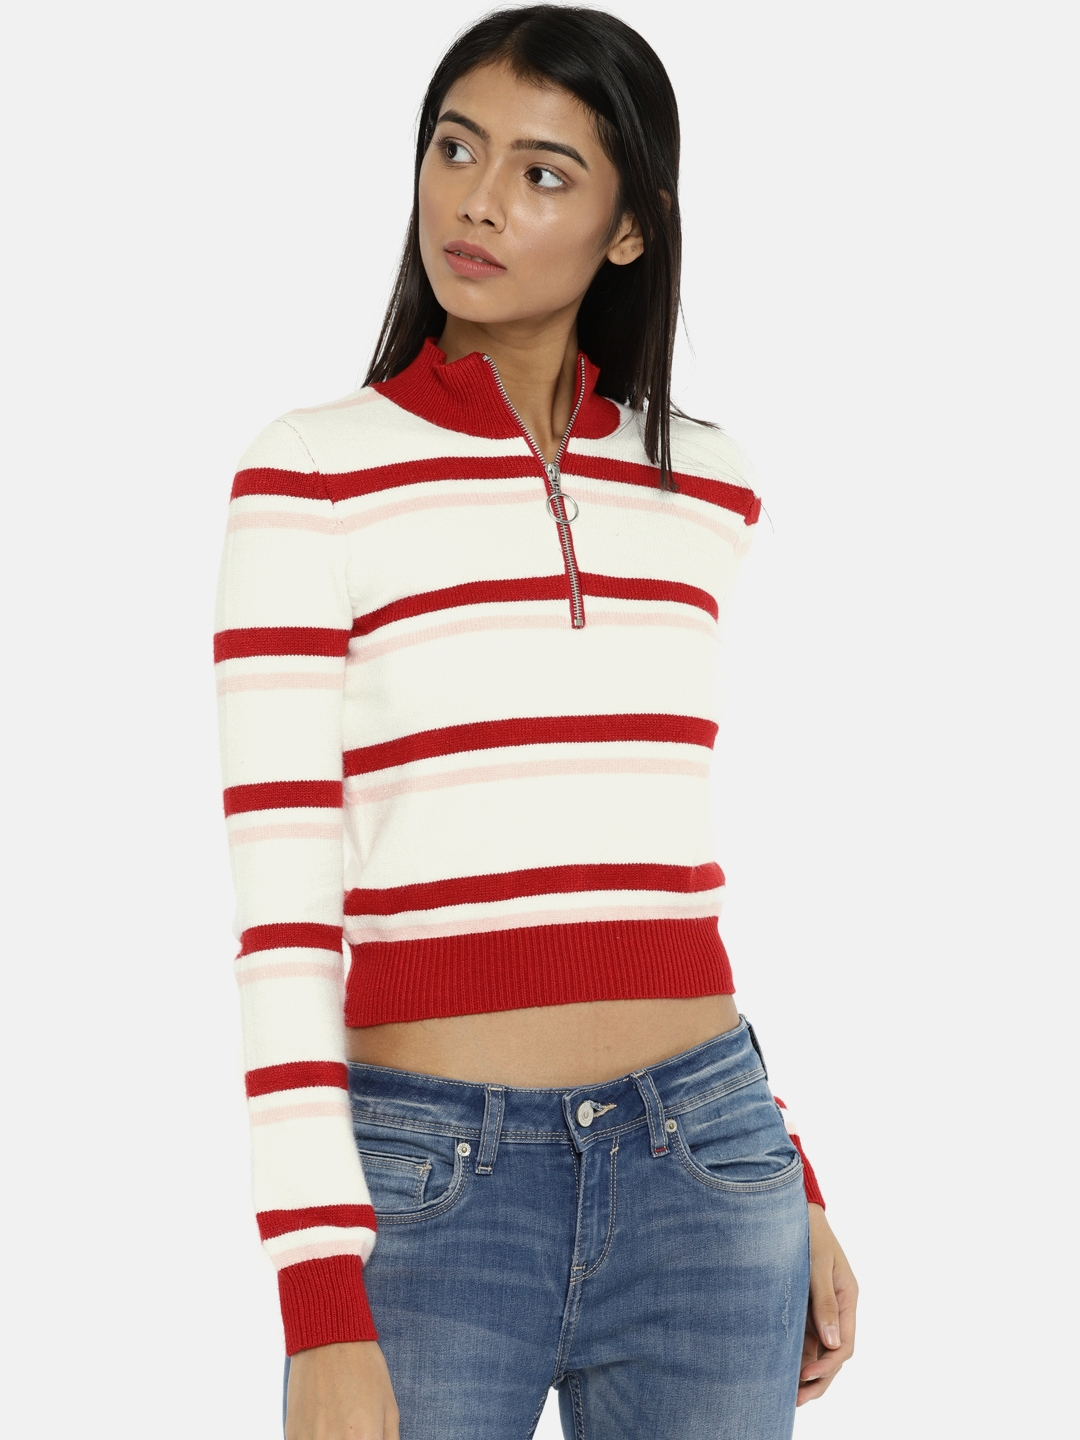 d164bbafc175be Buy FOREVER 21 Women Off White & Red Striped Cropped Pullover ...